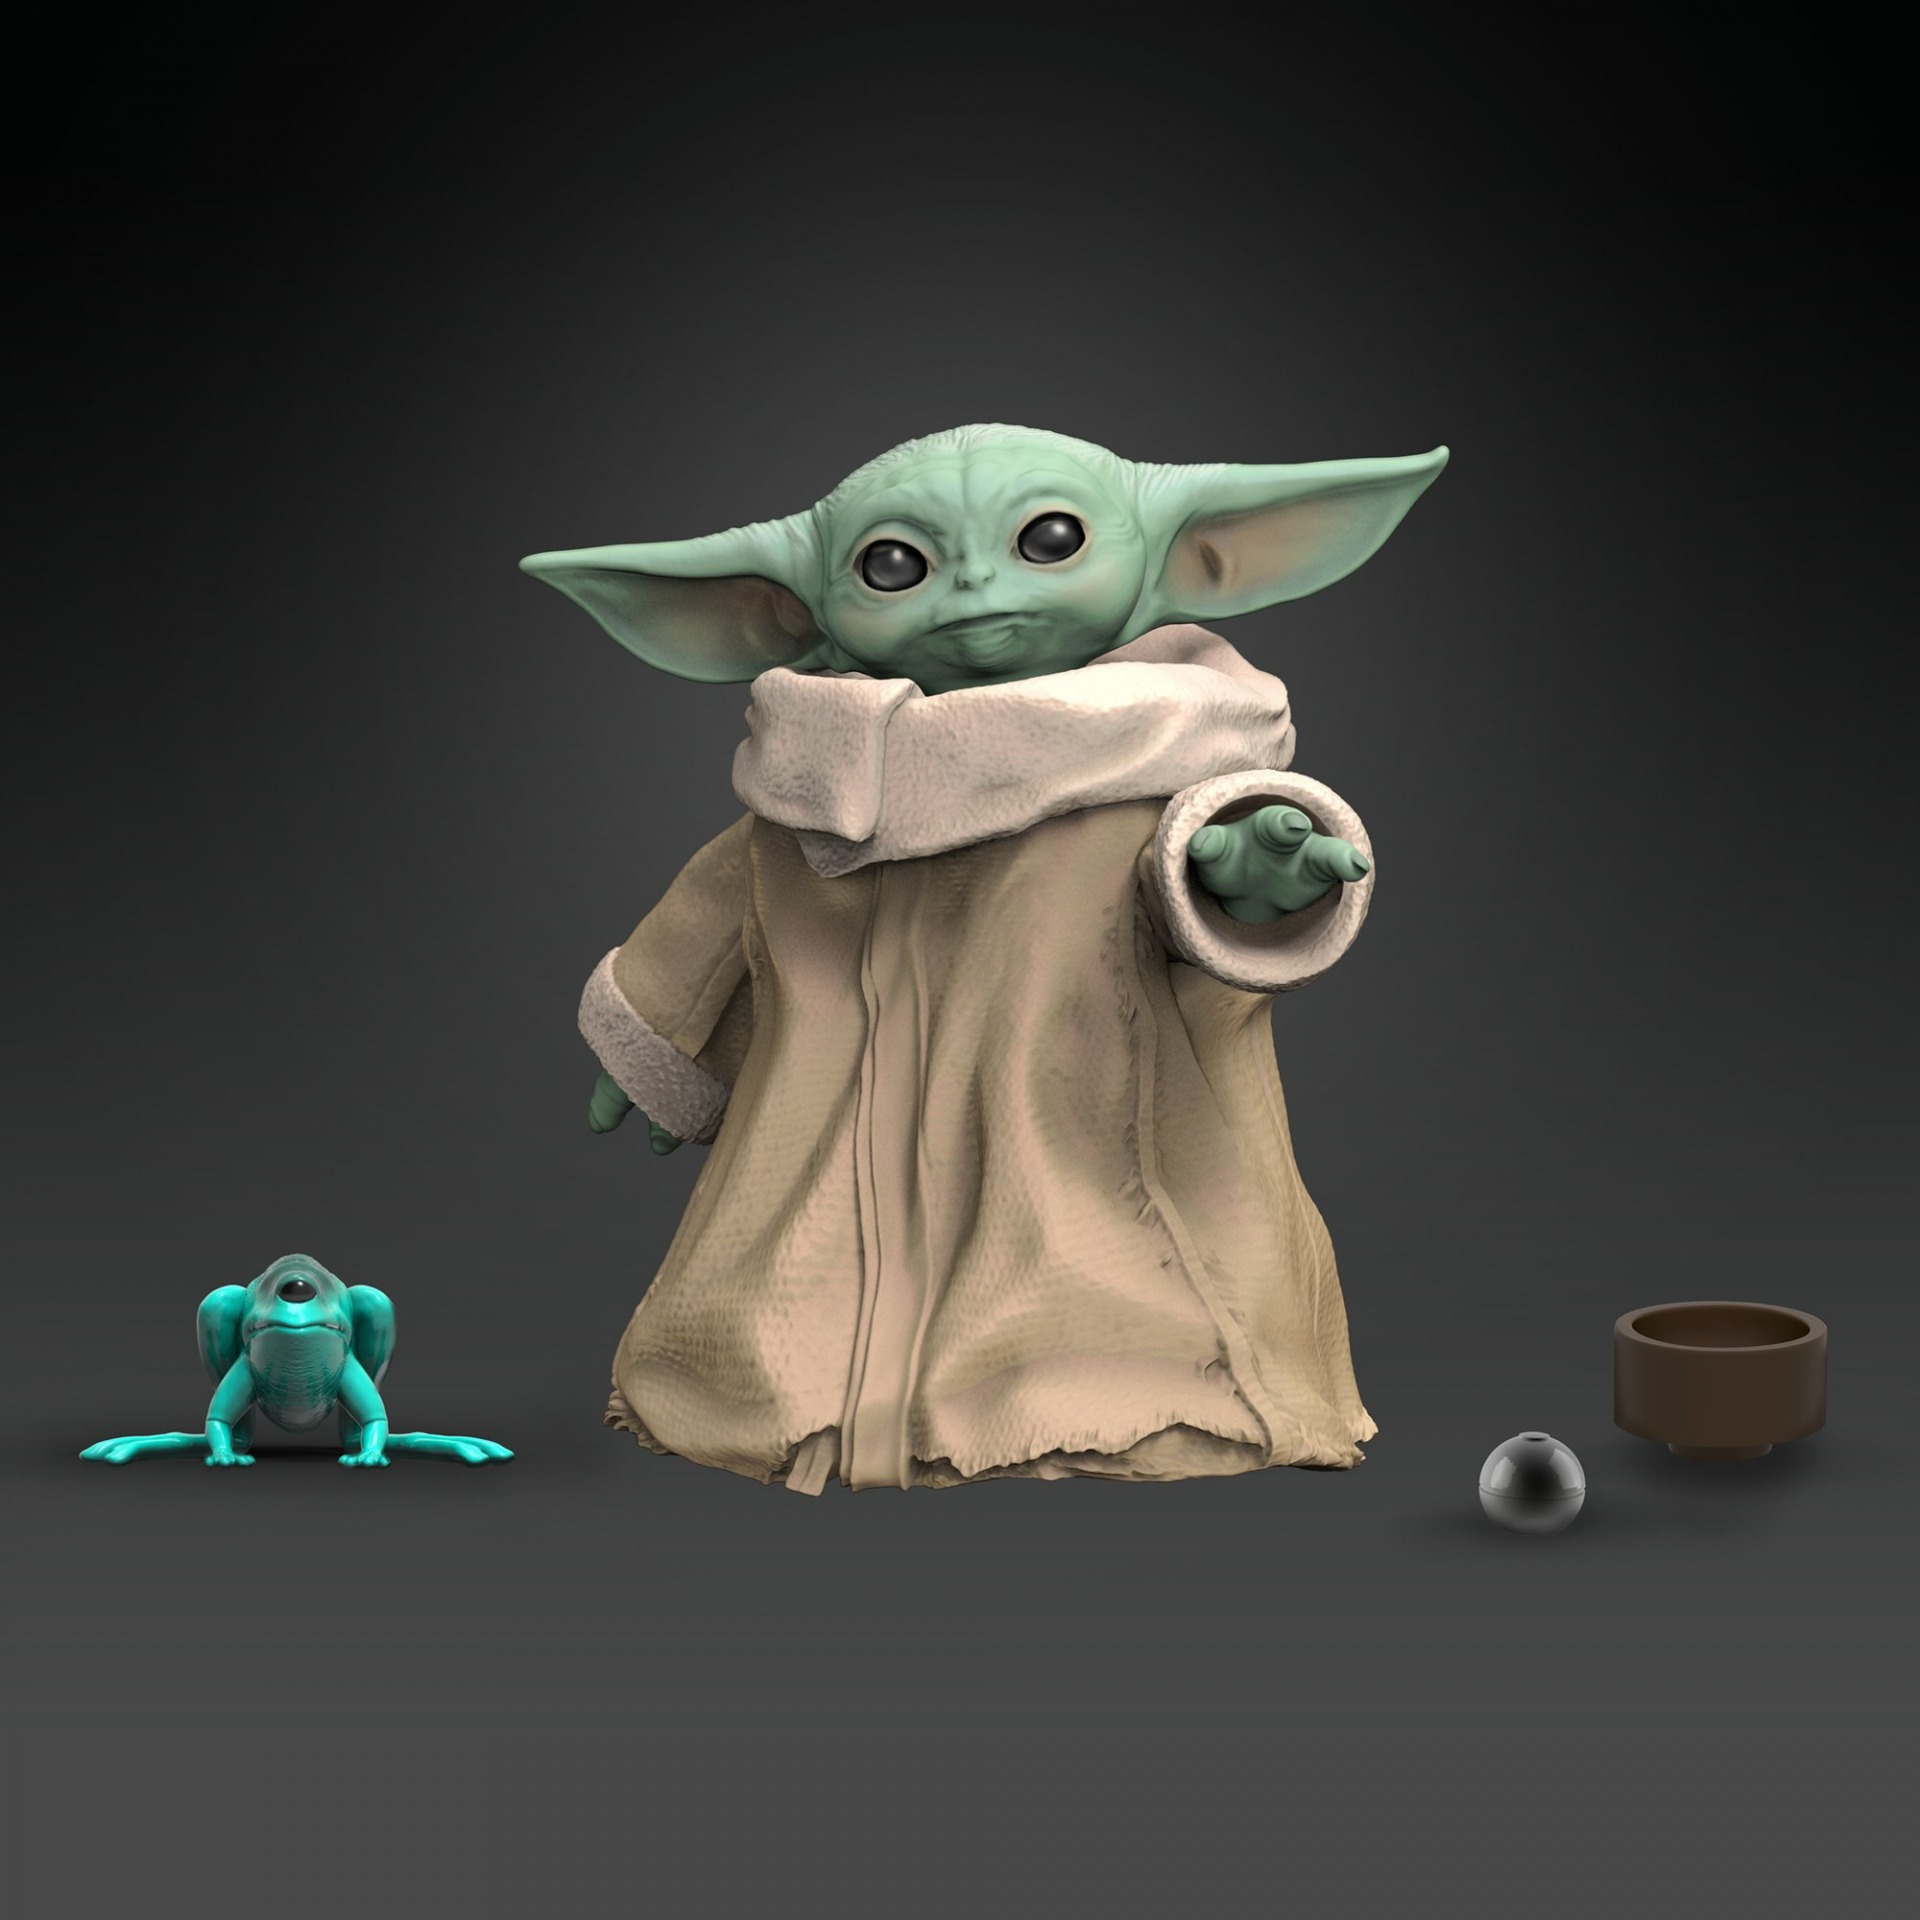 Baby Yoda Cup Imgflip